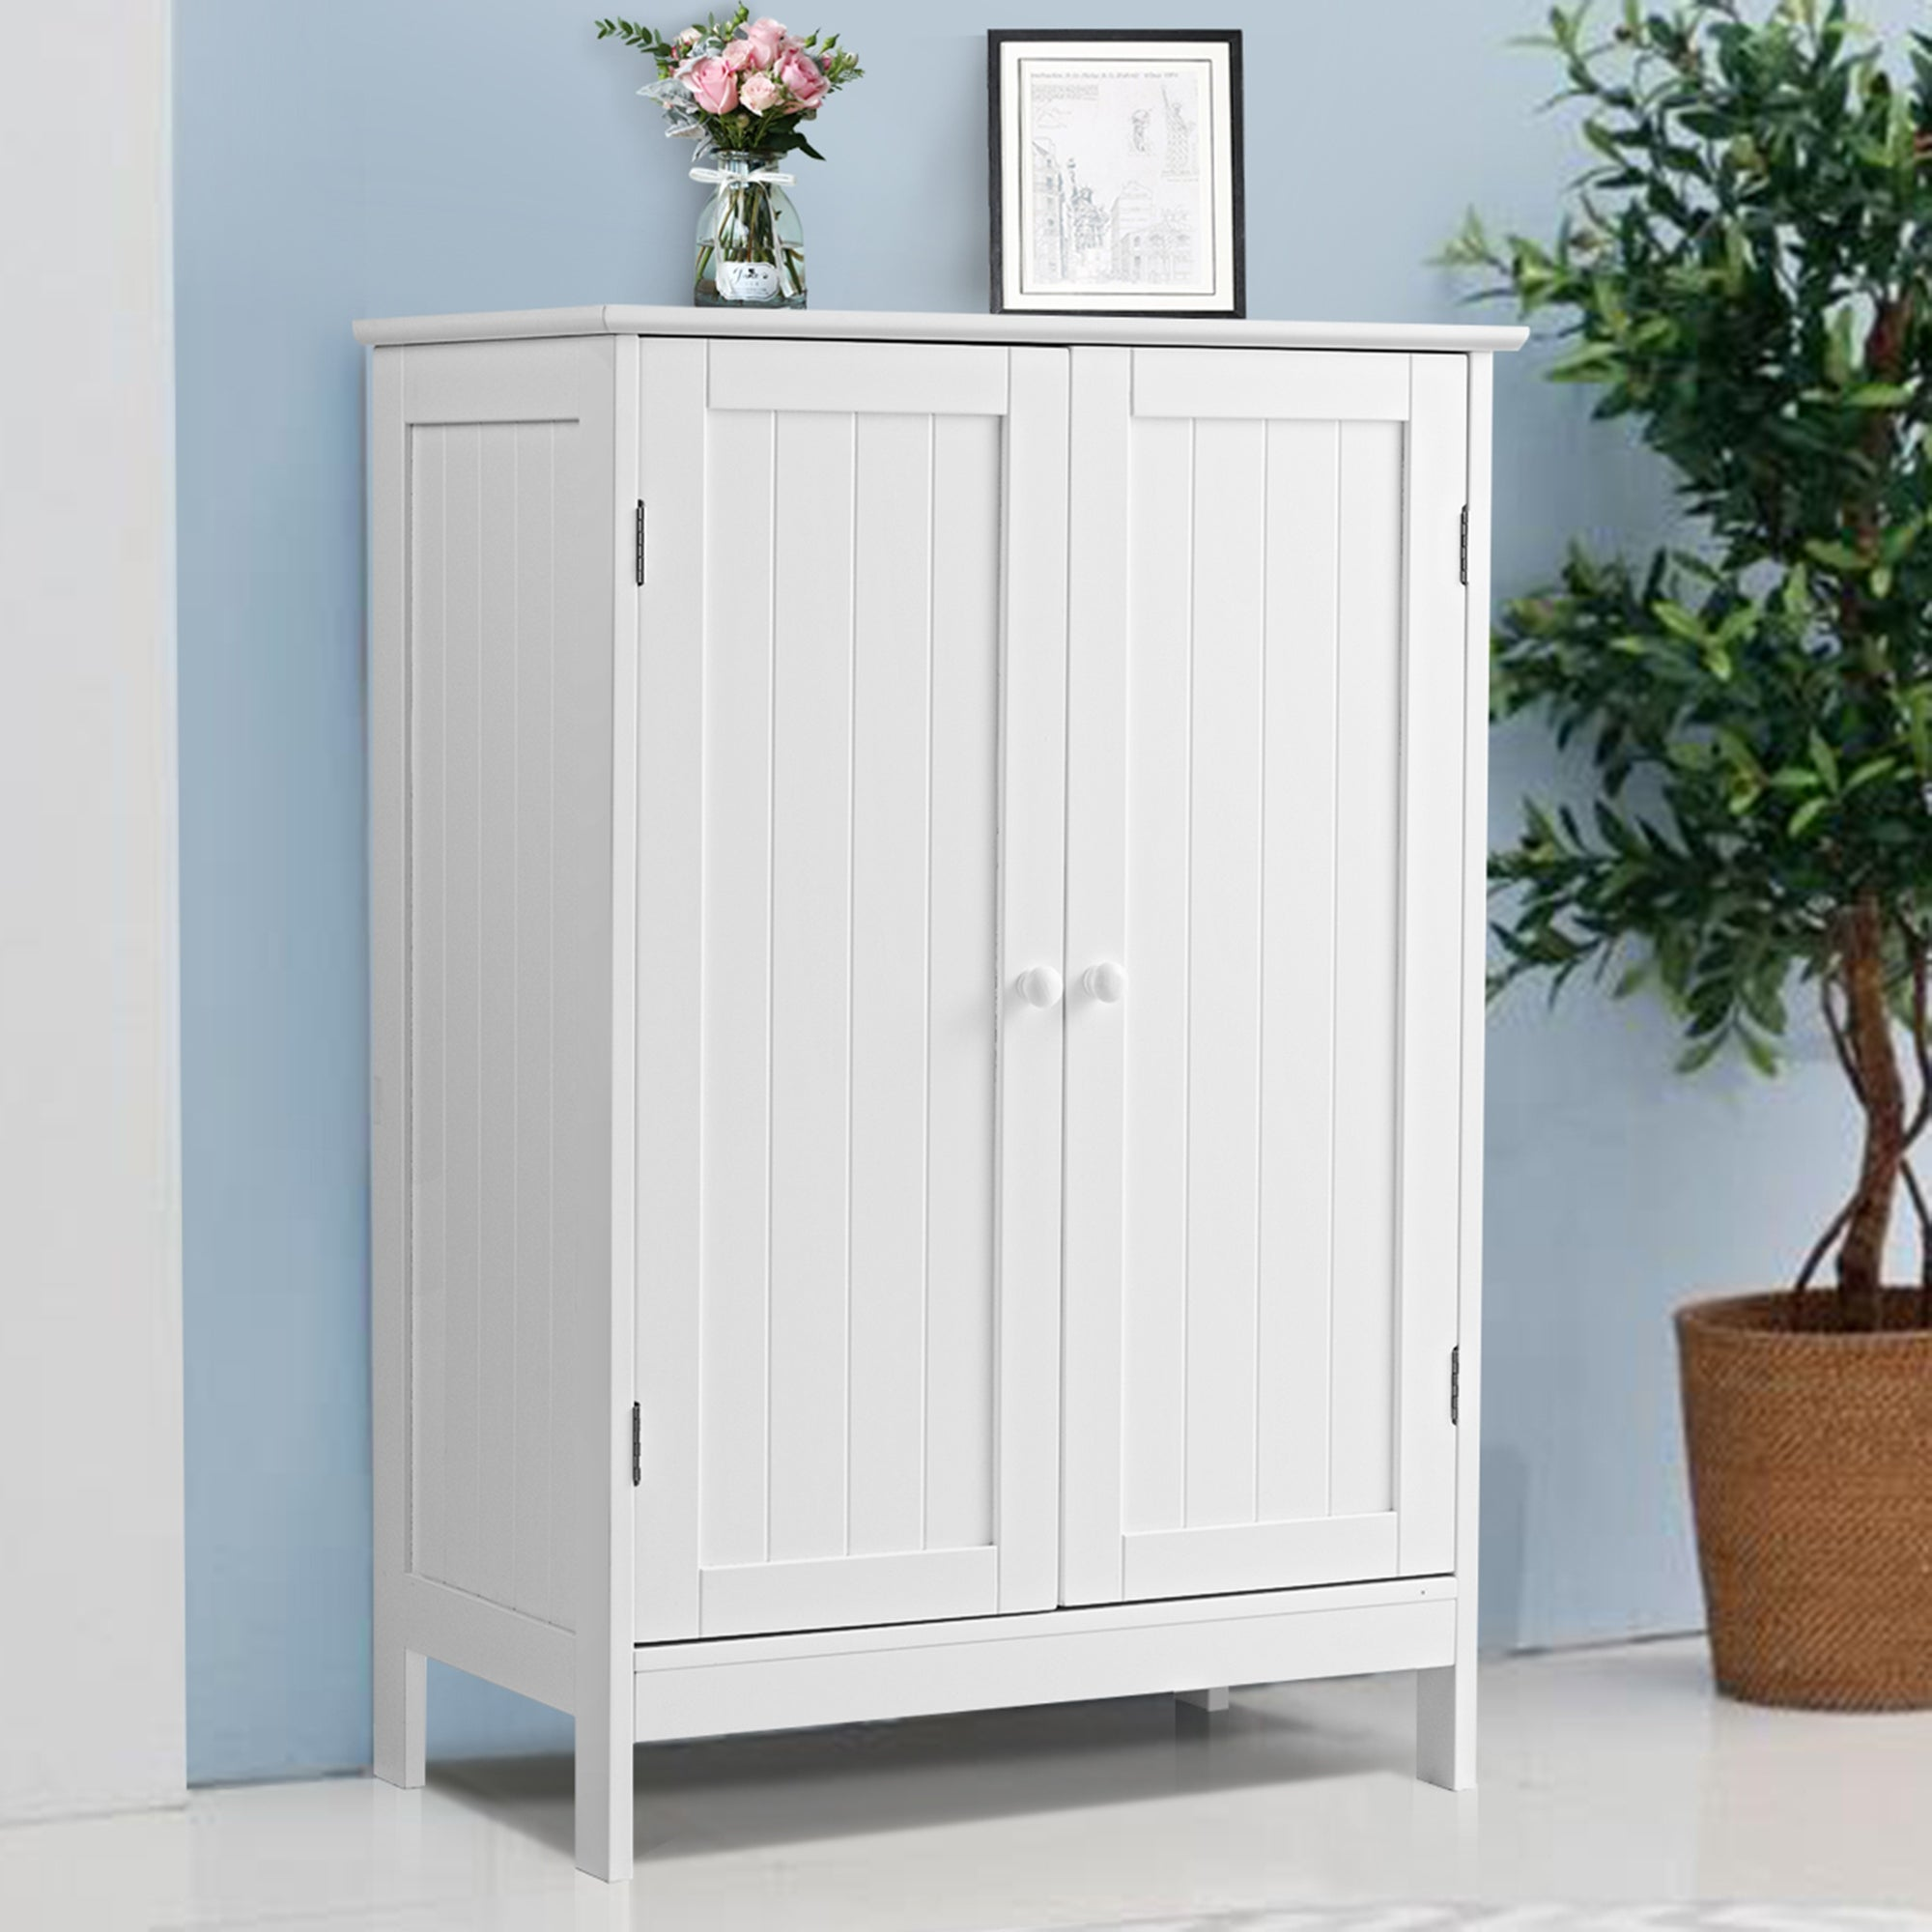 Bathroom Storage Cabinet With Double Doors Wooden Floor Shoe Cabinet Overstock 31291771